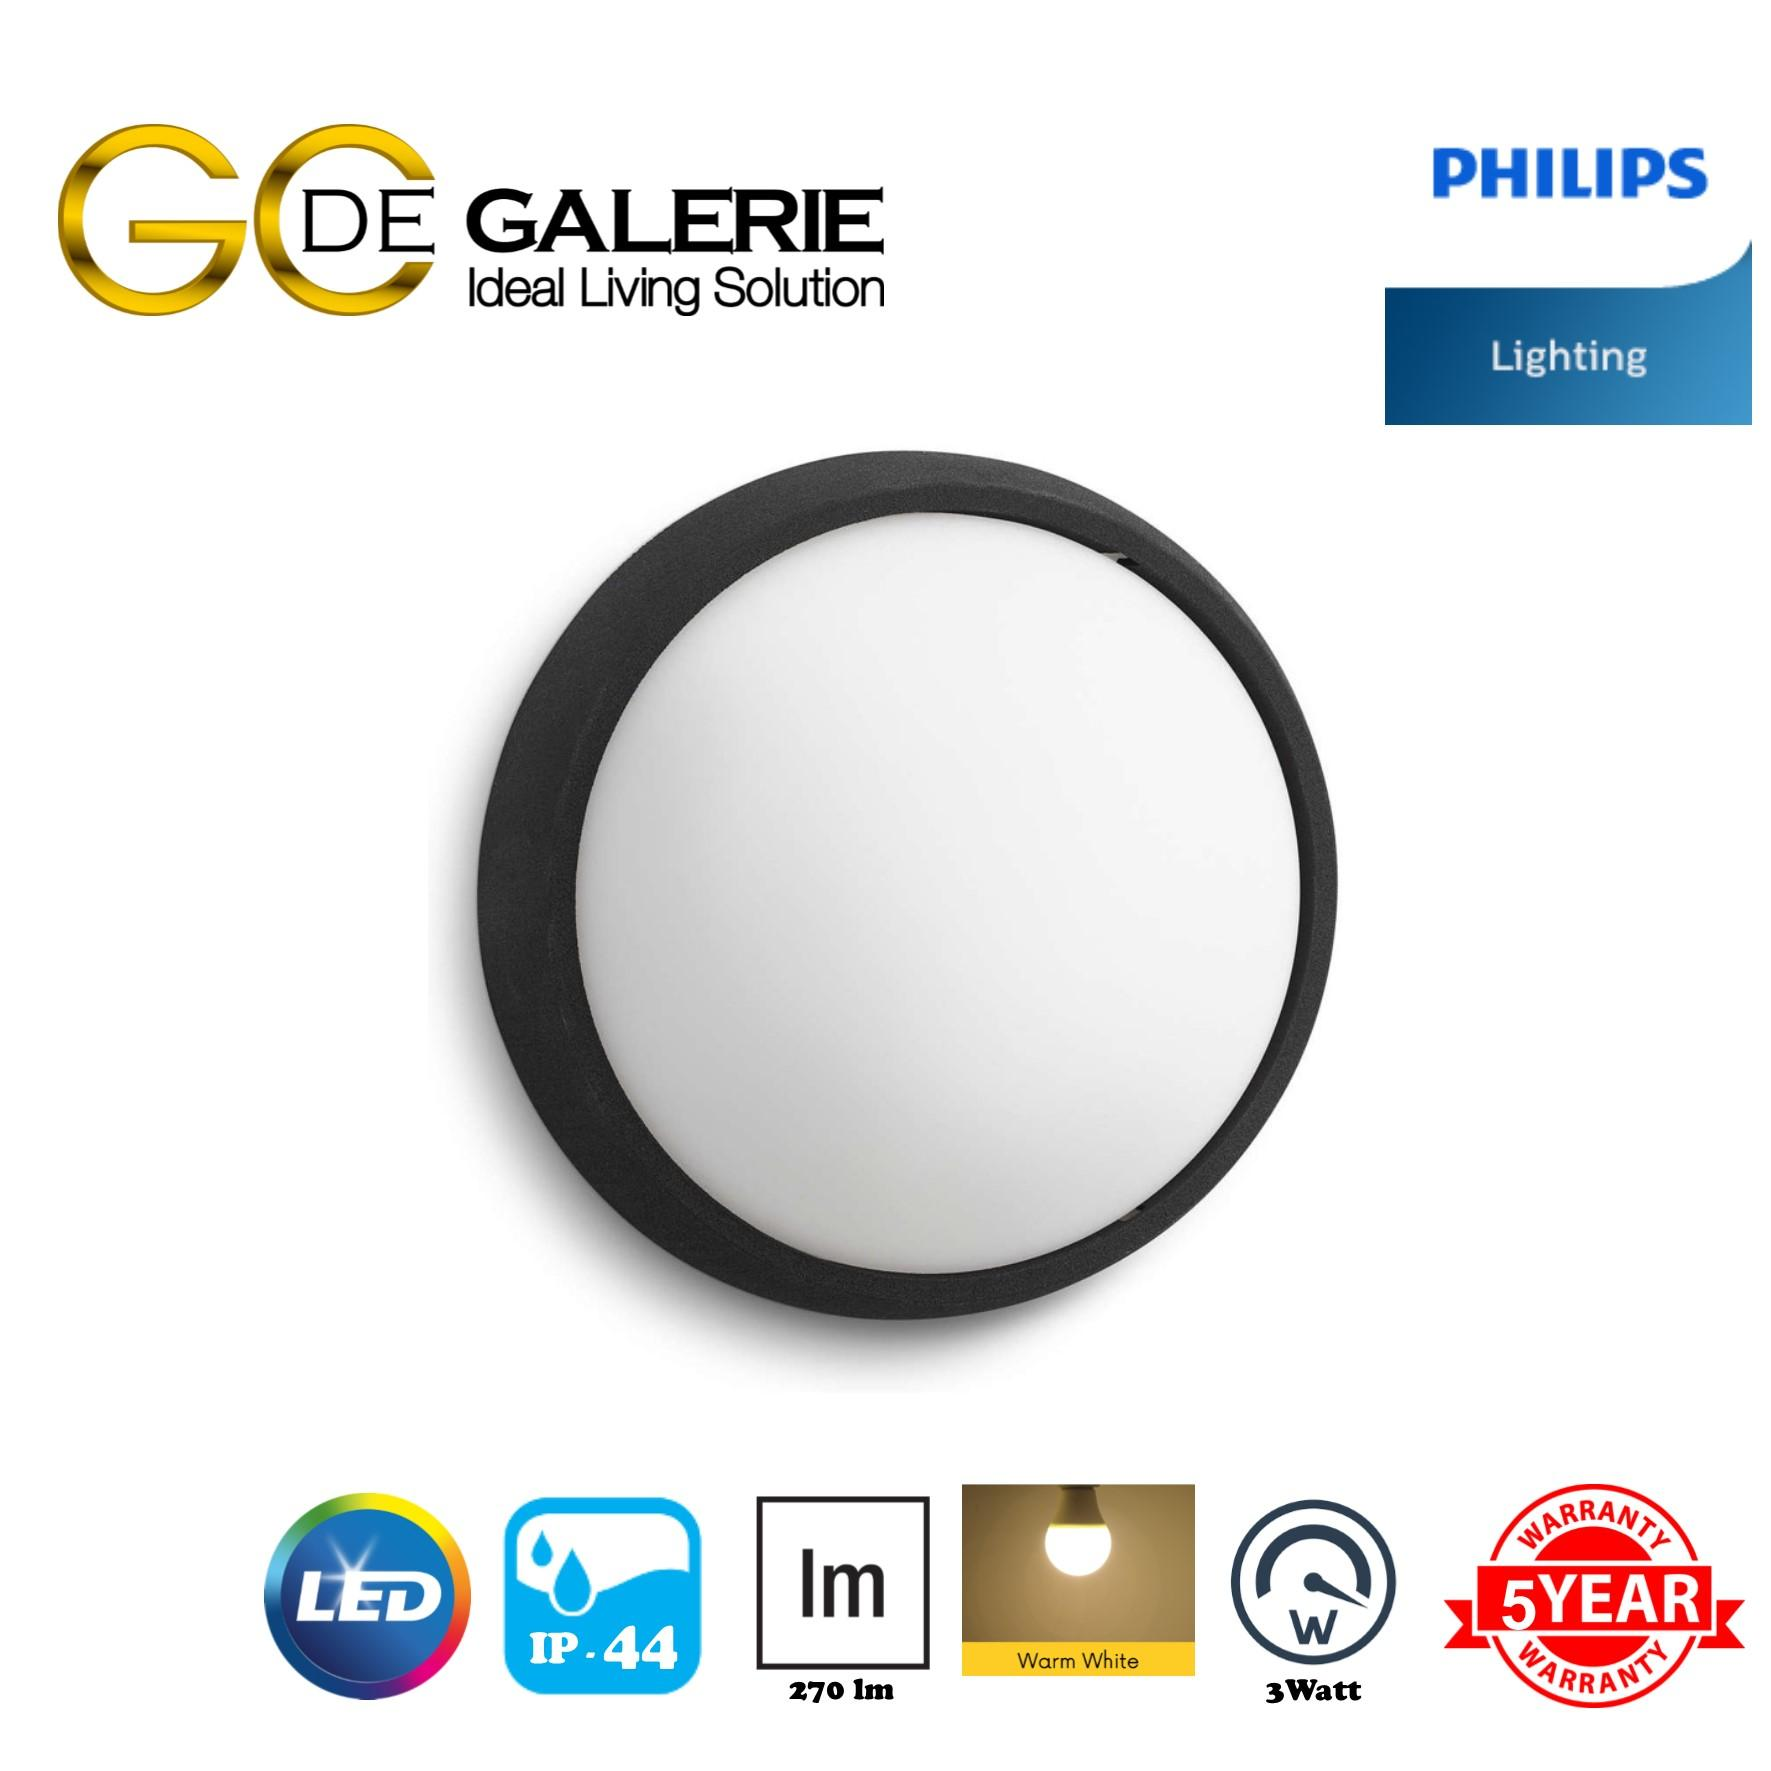 WALL LIGHT OUTDOOR LED PHILIPS 17304 EAGLE BK 1x3.5W SEL